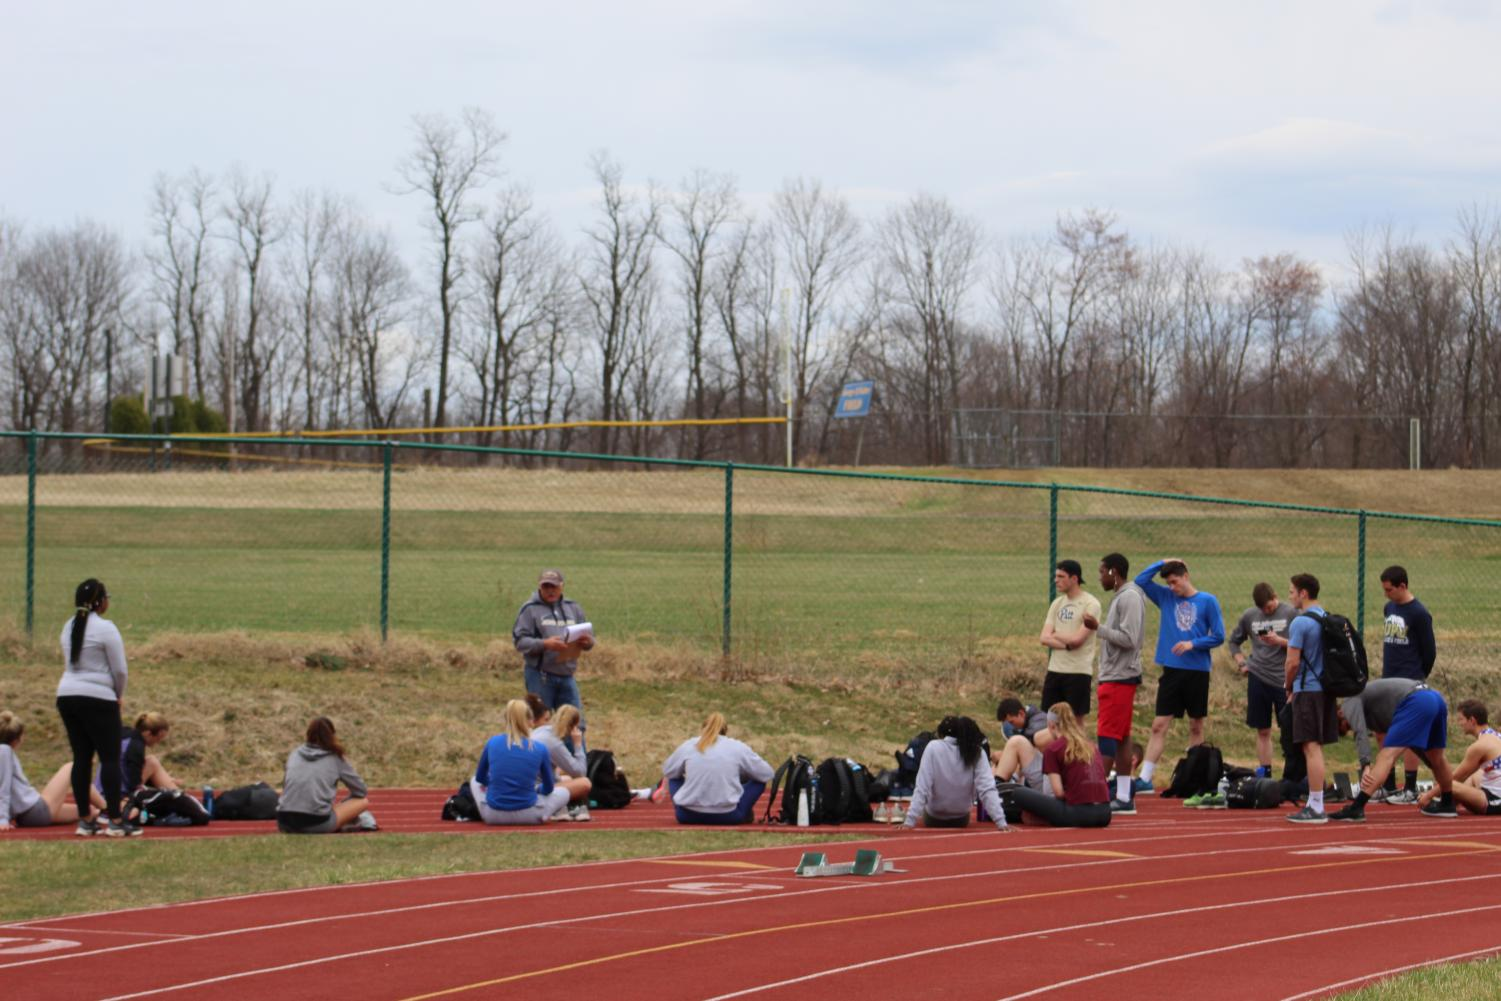 The track and field team trained outdoors for the for Bucknell University Distance Carnival April 9.